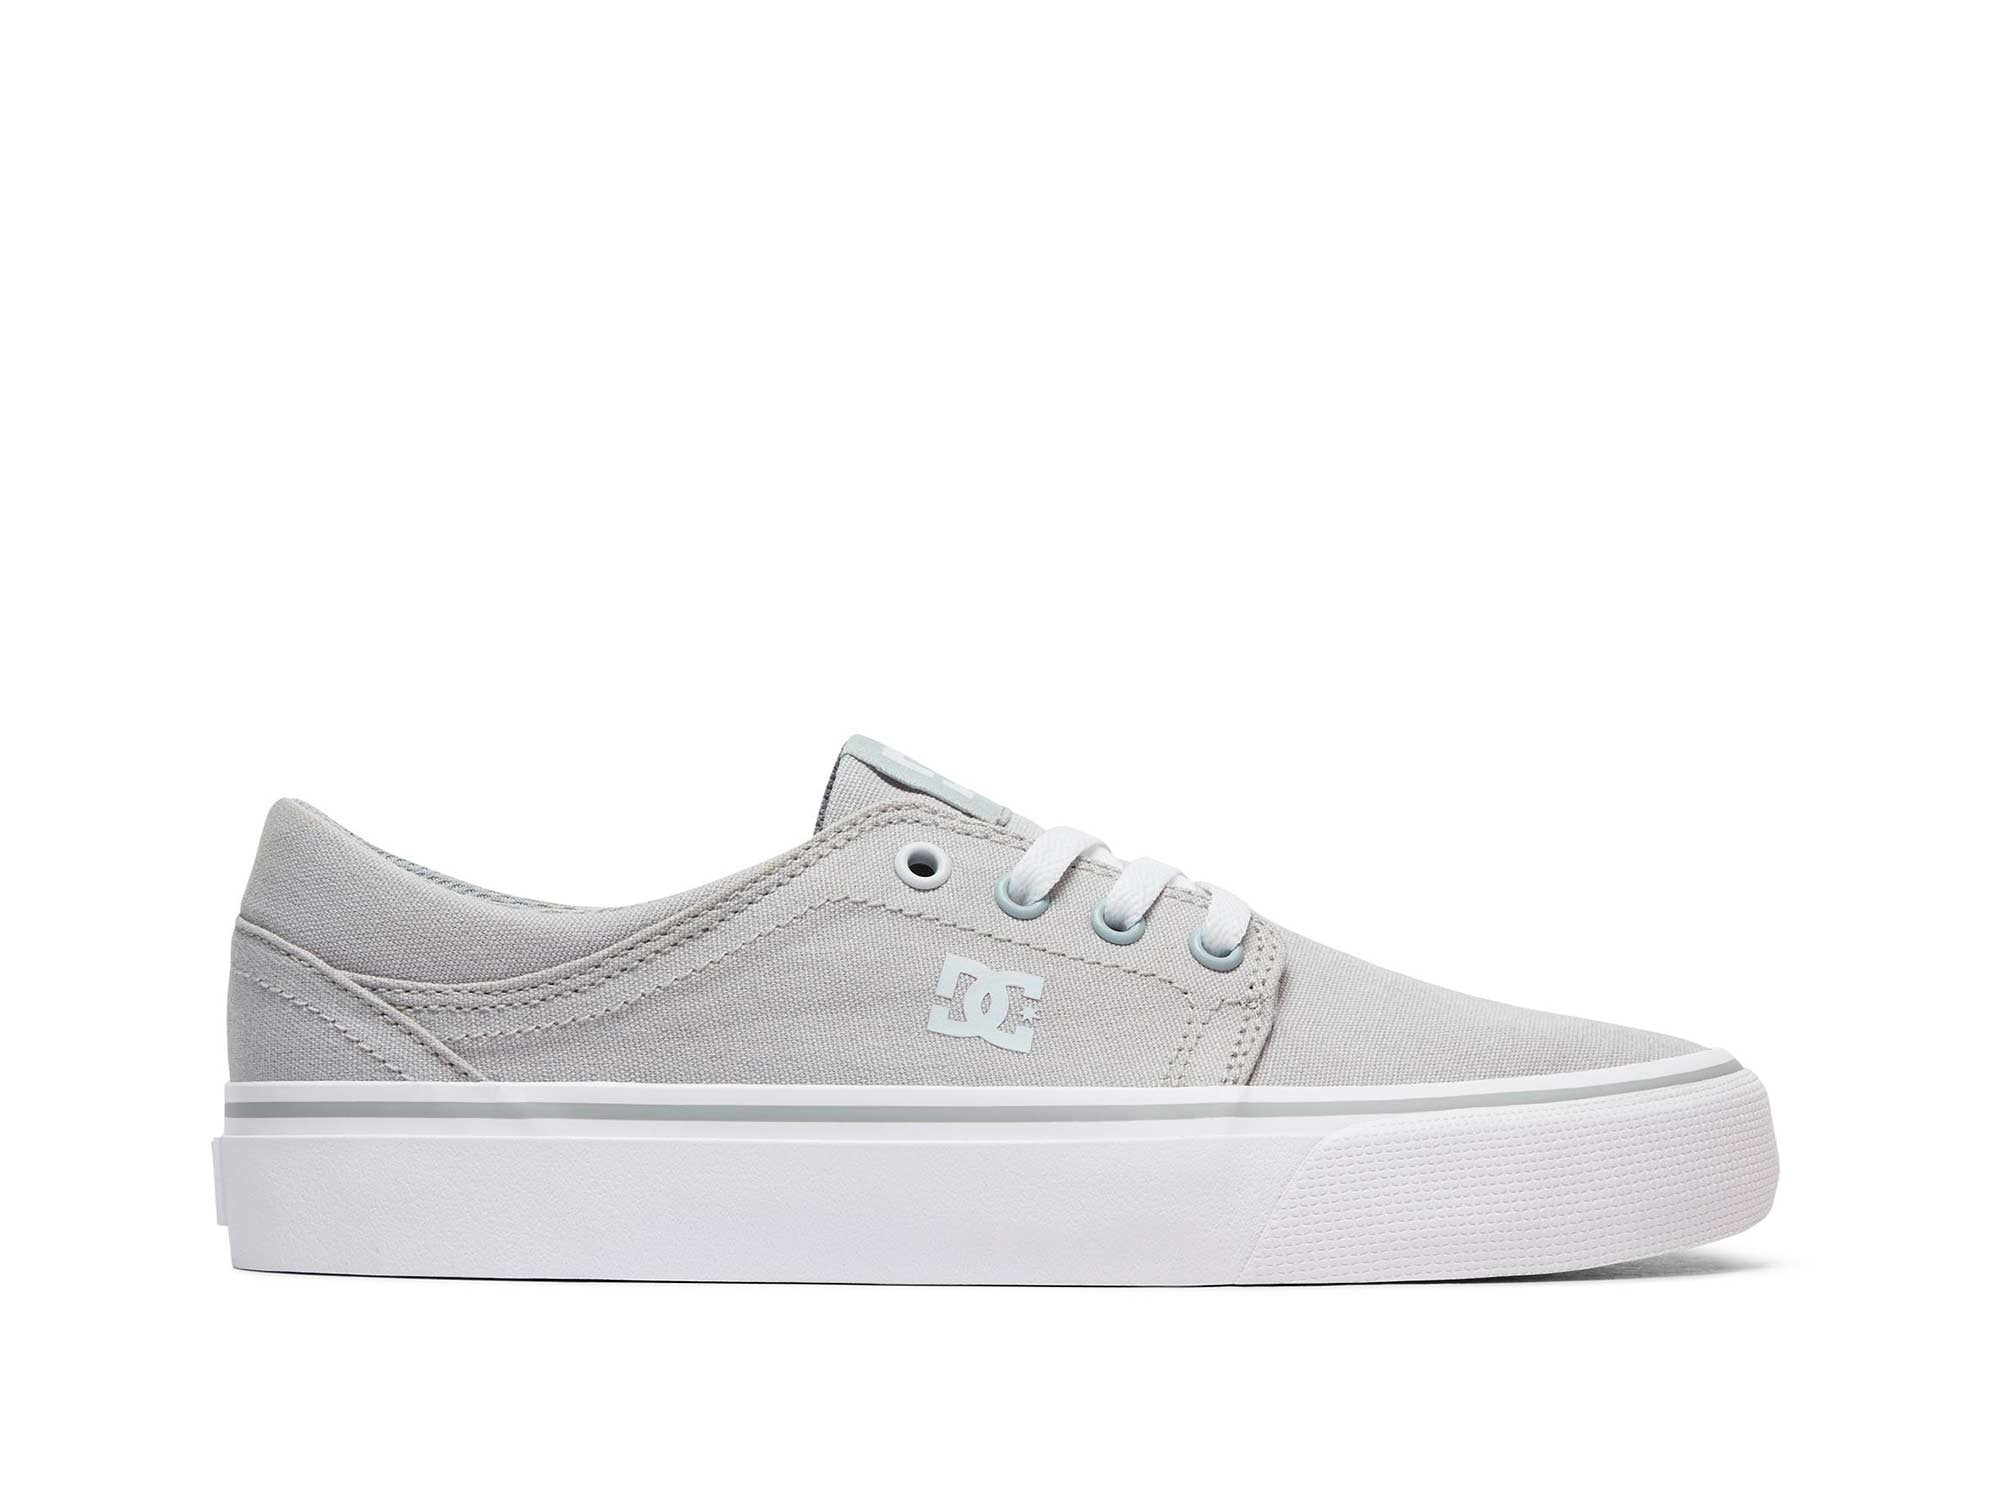 Zapatilla Dc Trase Tx Mujer Gris